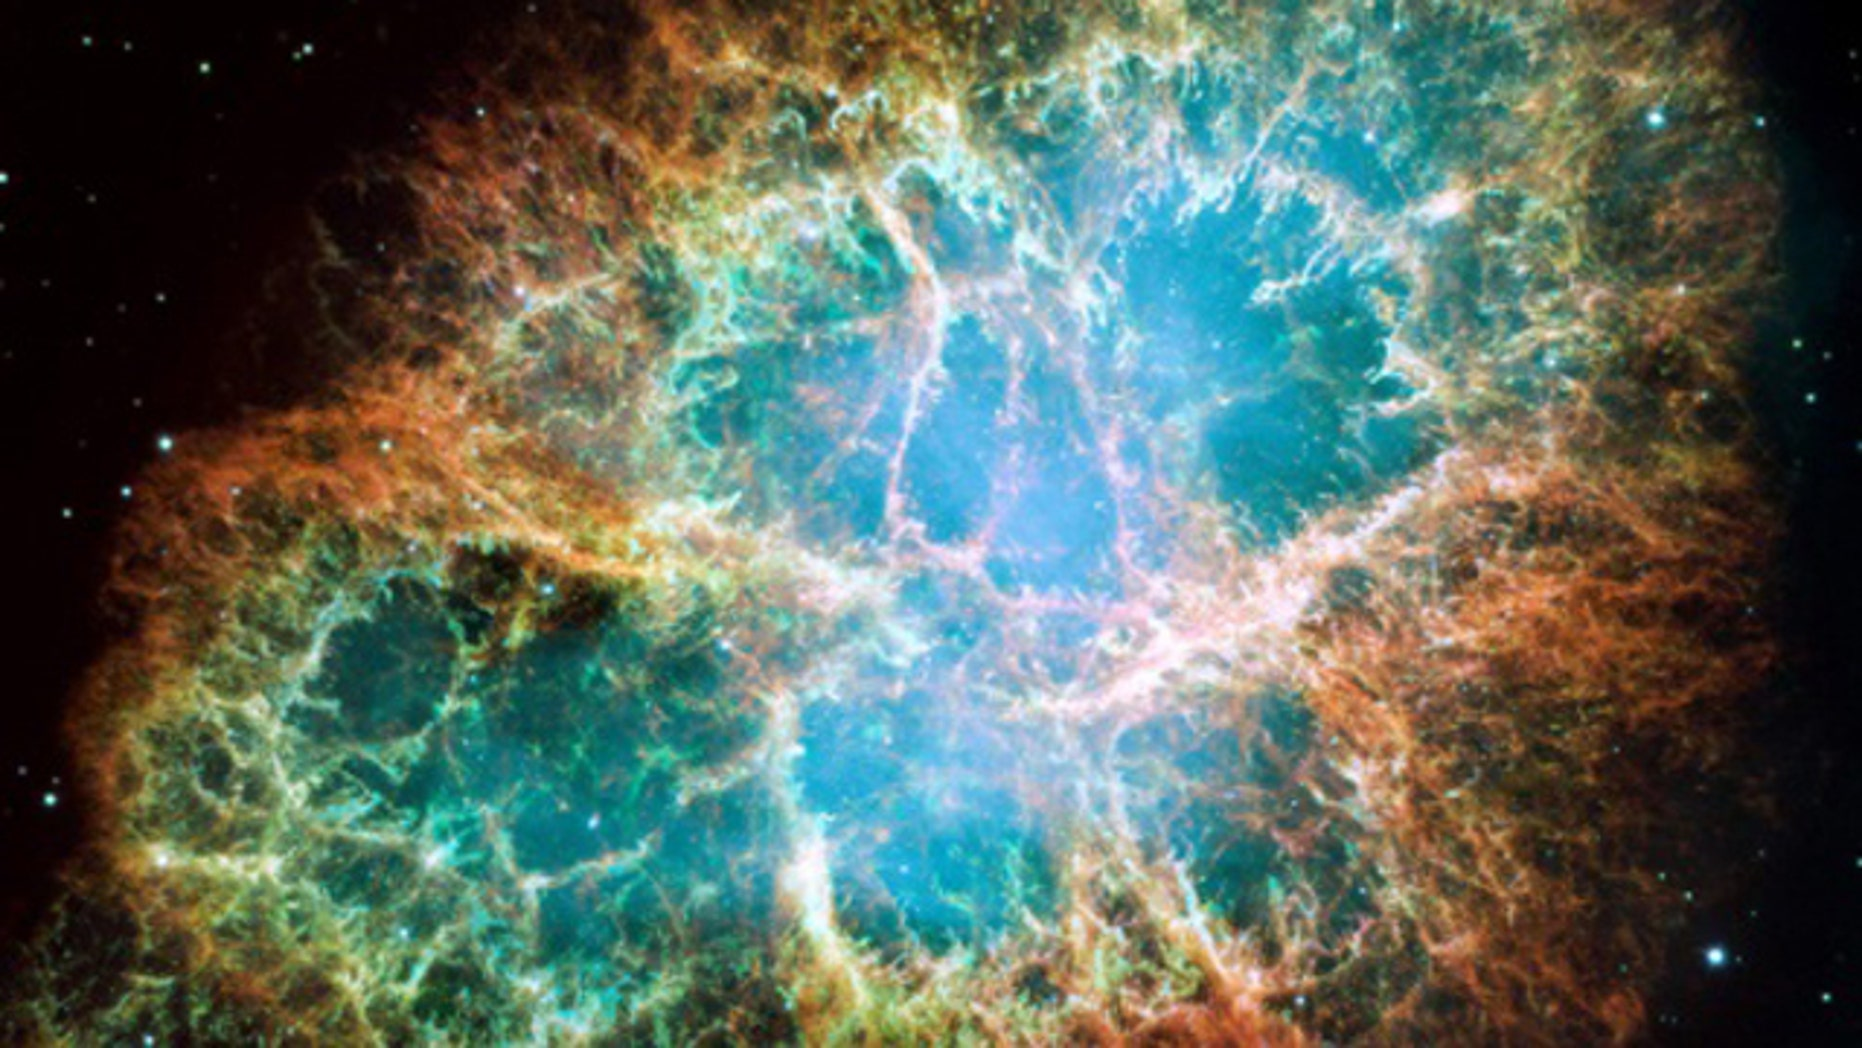 This mossaic image is a 6-light-year-wide expanding remnant of a star's supernova explosion.